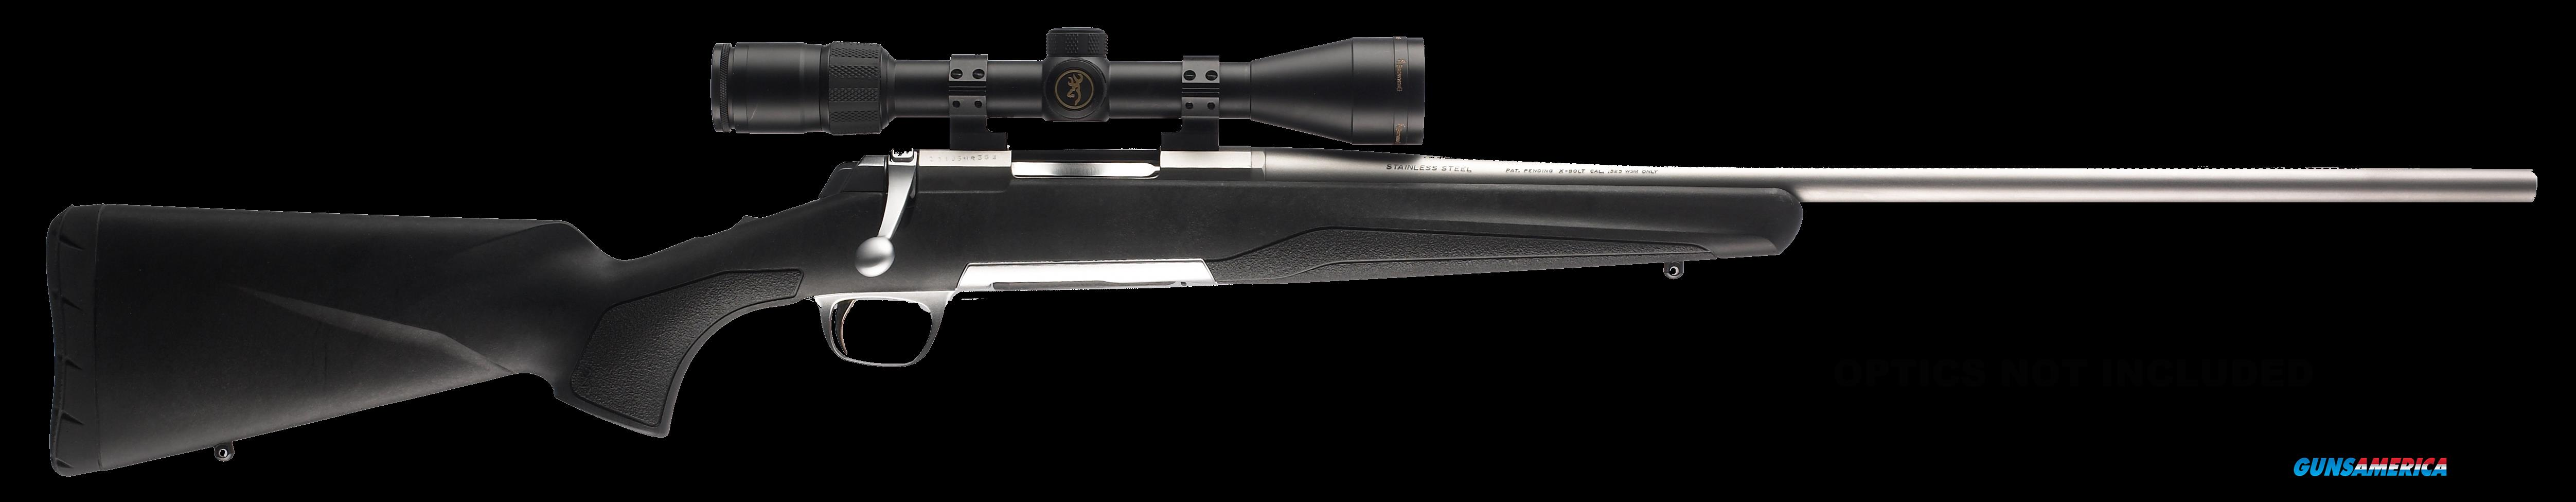 "Browning 035201282 X-Bolt Composite Stalker Bolt 6.5 Creedmoor 22"" 4+1 Synthetic Black Stock Blued  Guns > Rifles > B Misc Rifles"